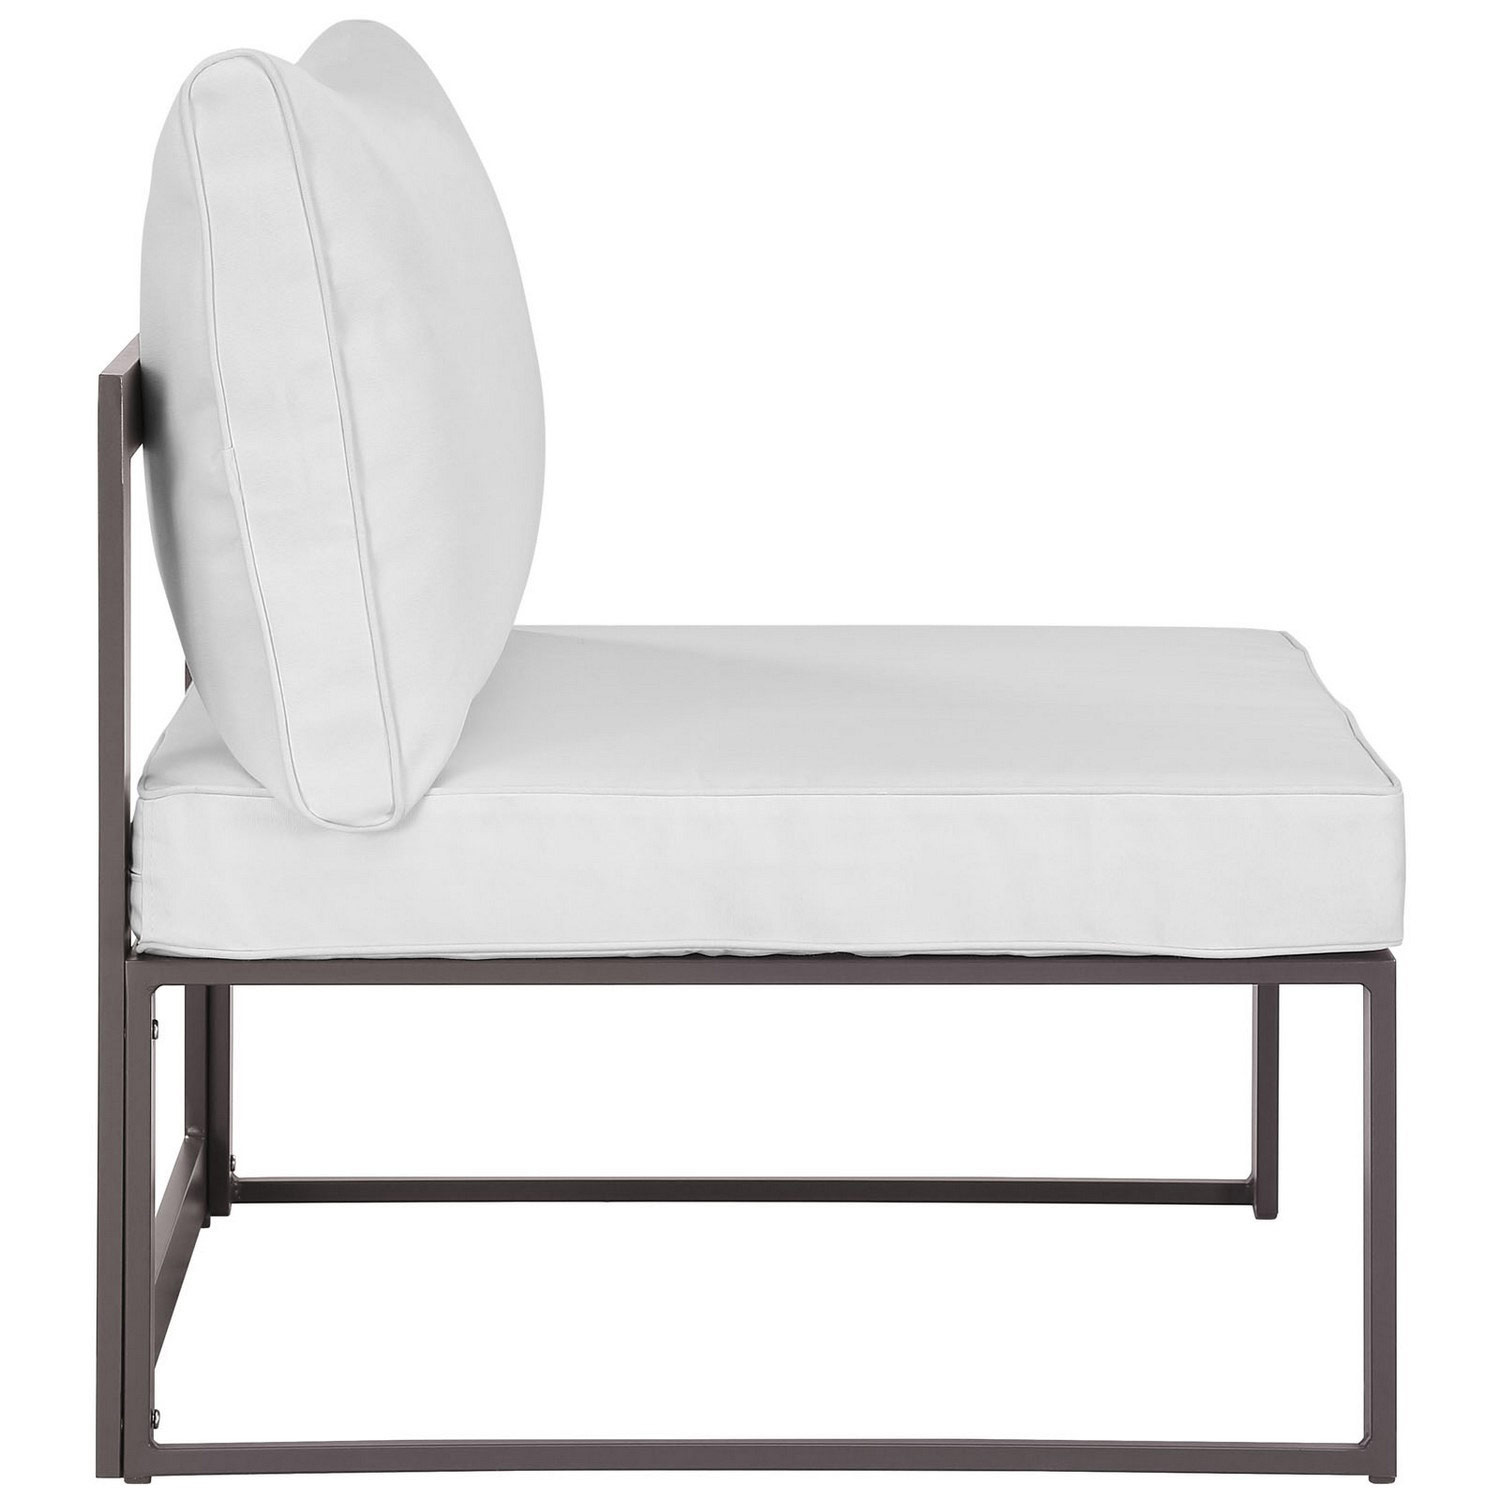 Modway Fortuna Armless Outdoor Patio Sofa - Brown/White